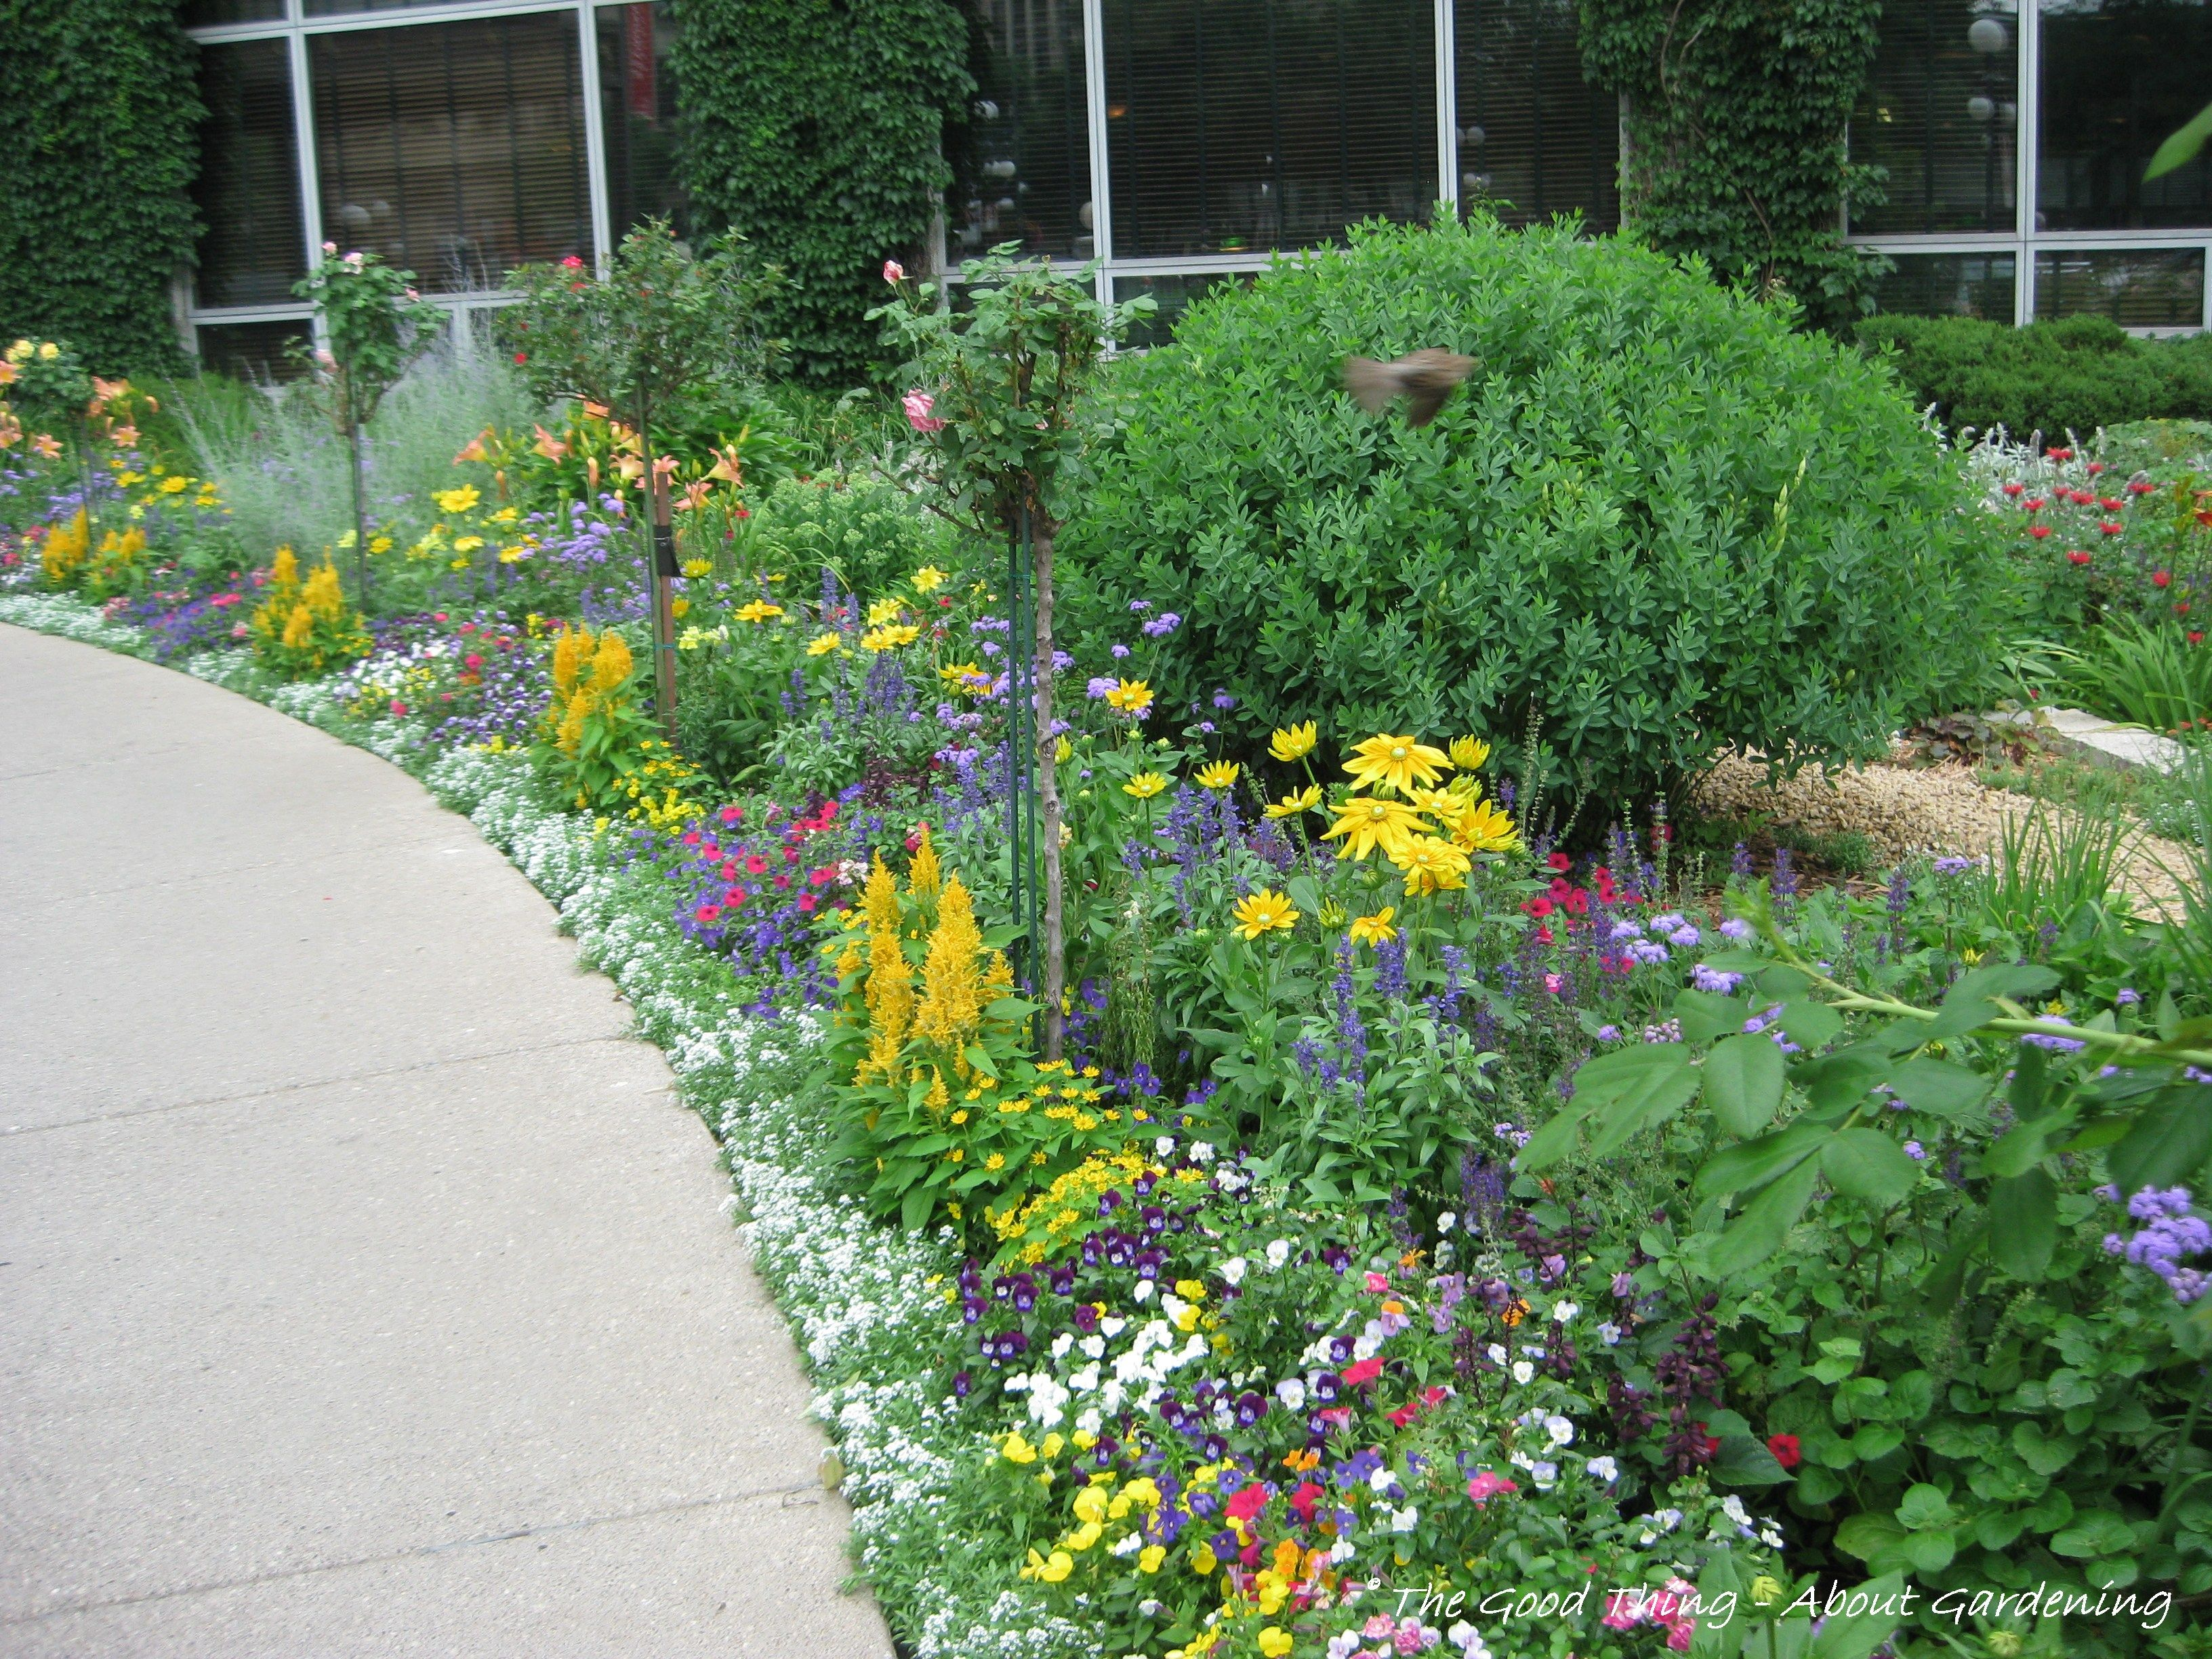 garden edging next to sidewalk Flower gardens include annuals to